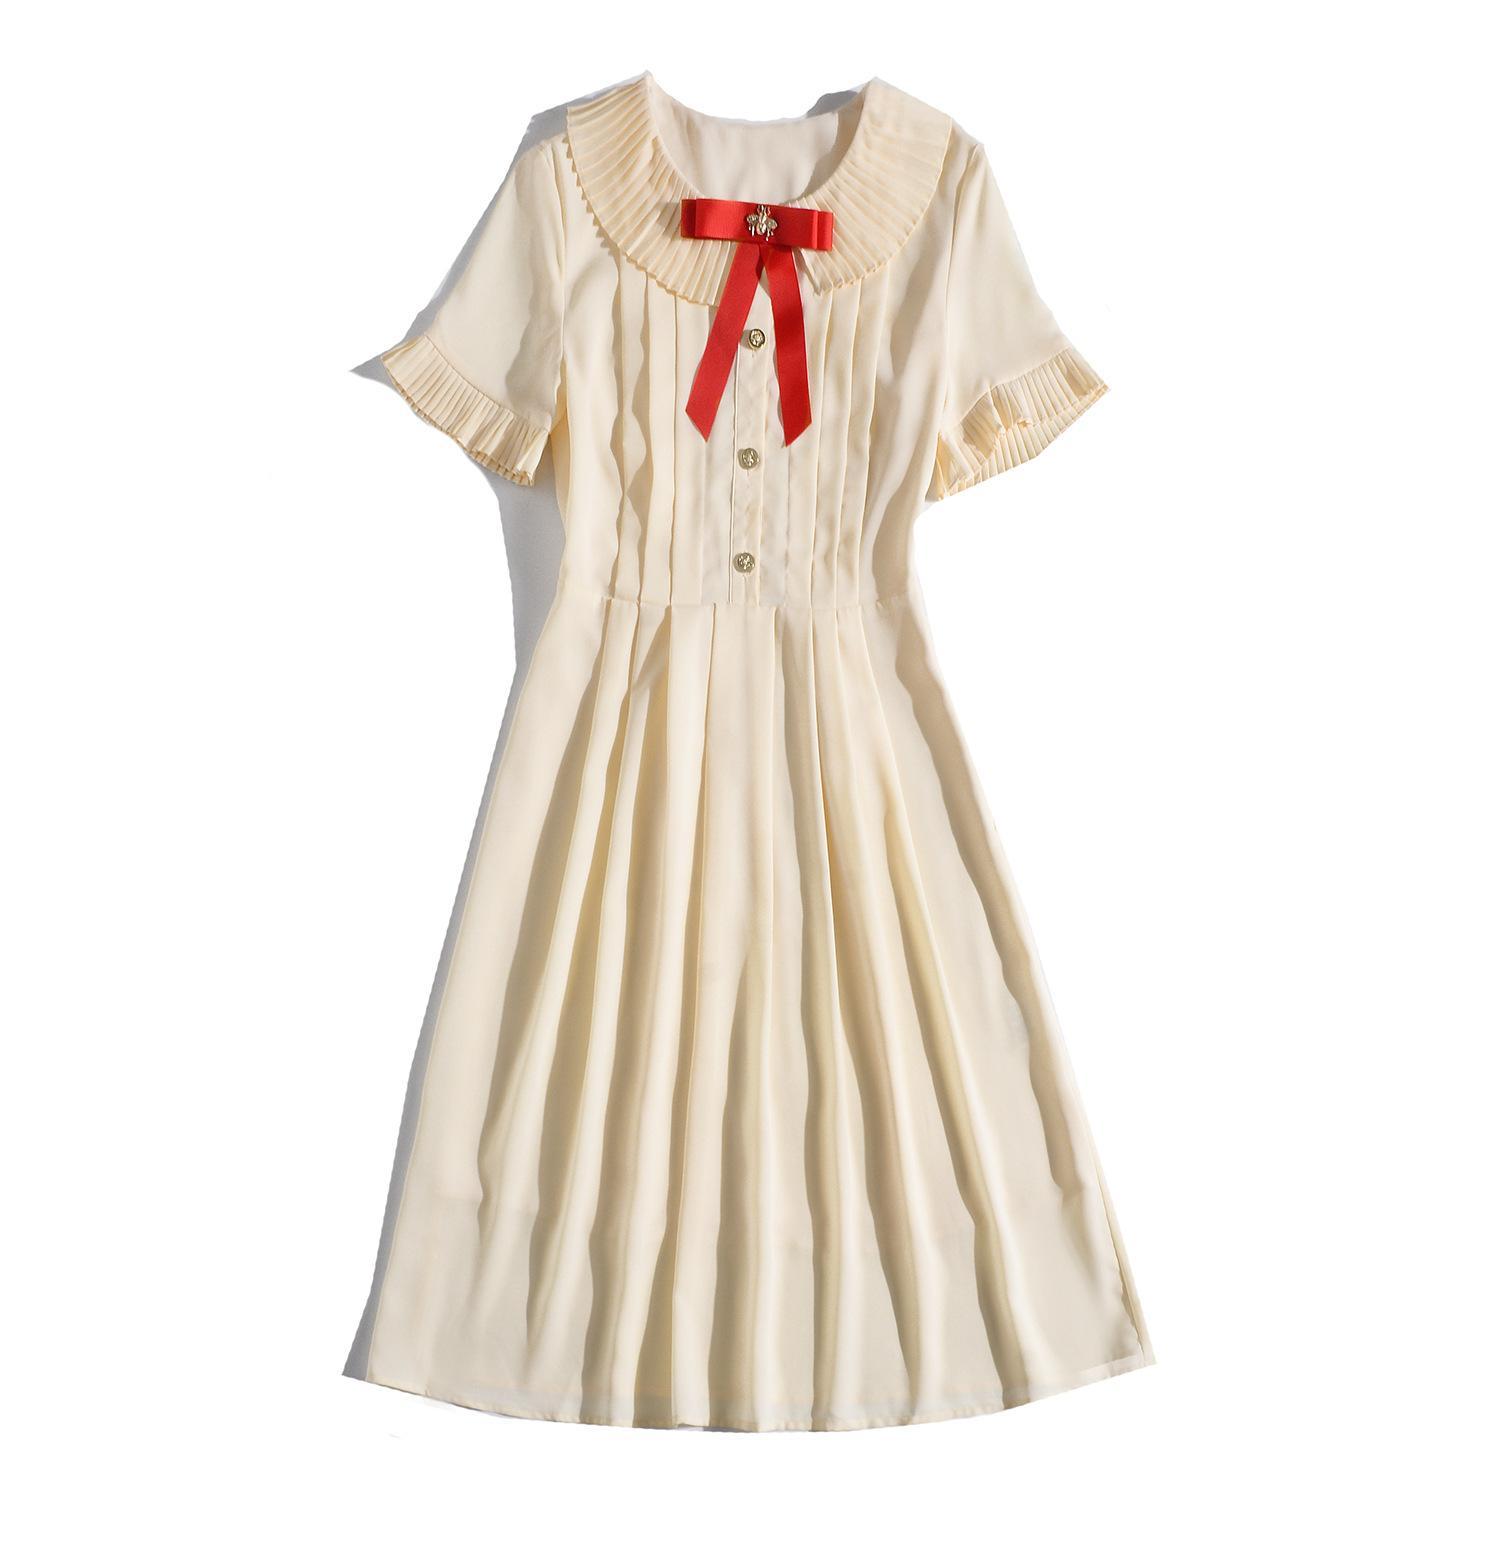 2019 Summer Fall Short Sleeve Crew Neck Contrast Color Pleated Mid-Calf Length Dress Luxury Runway Dresses MAY3117JYJ5